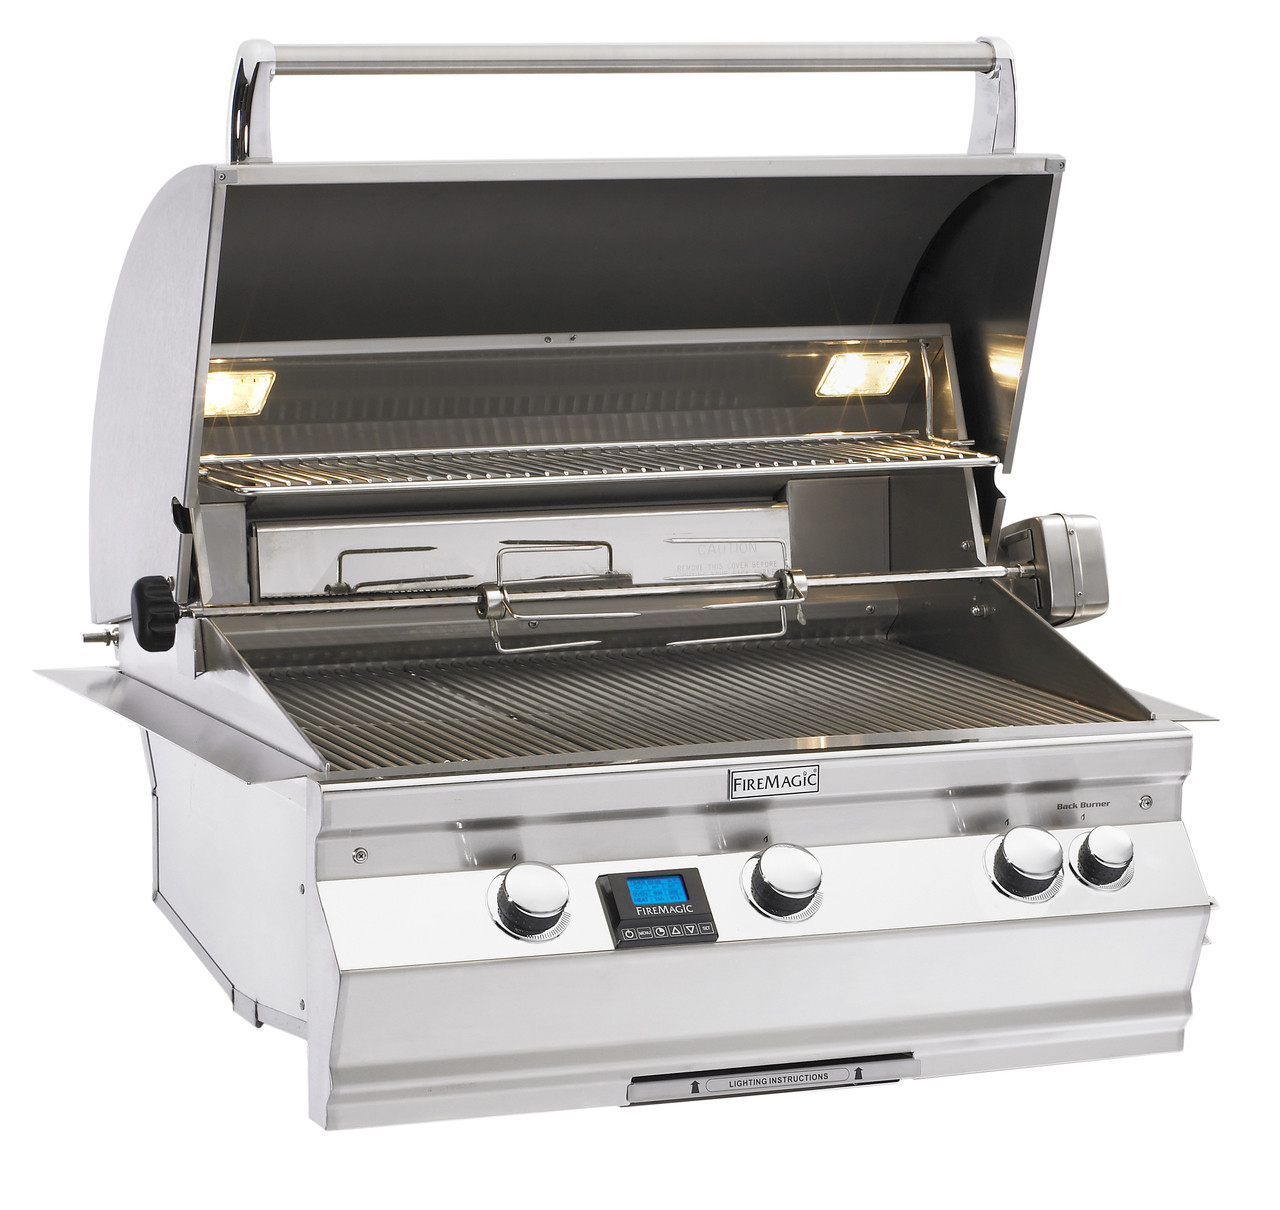 Firemagic Aurora A660i Built-In Grill - Analog Style with Backburner & Rotisserie Kit and Left Side Infrared Burner and Magic View Window